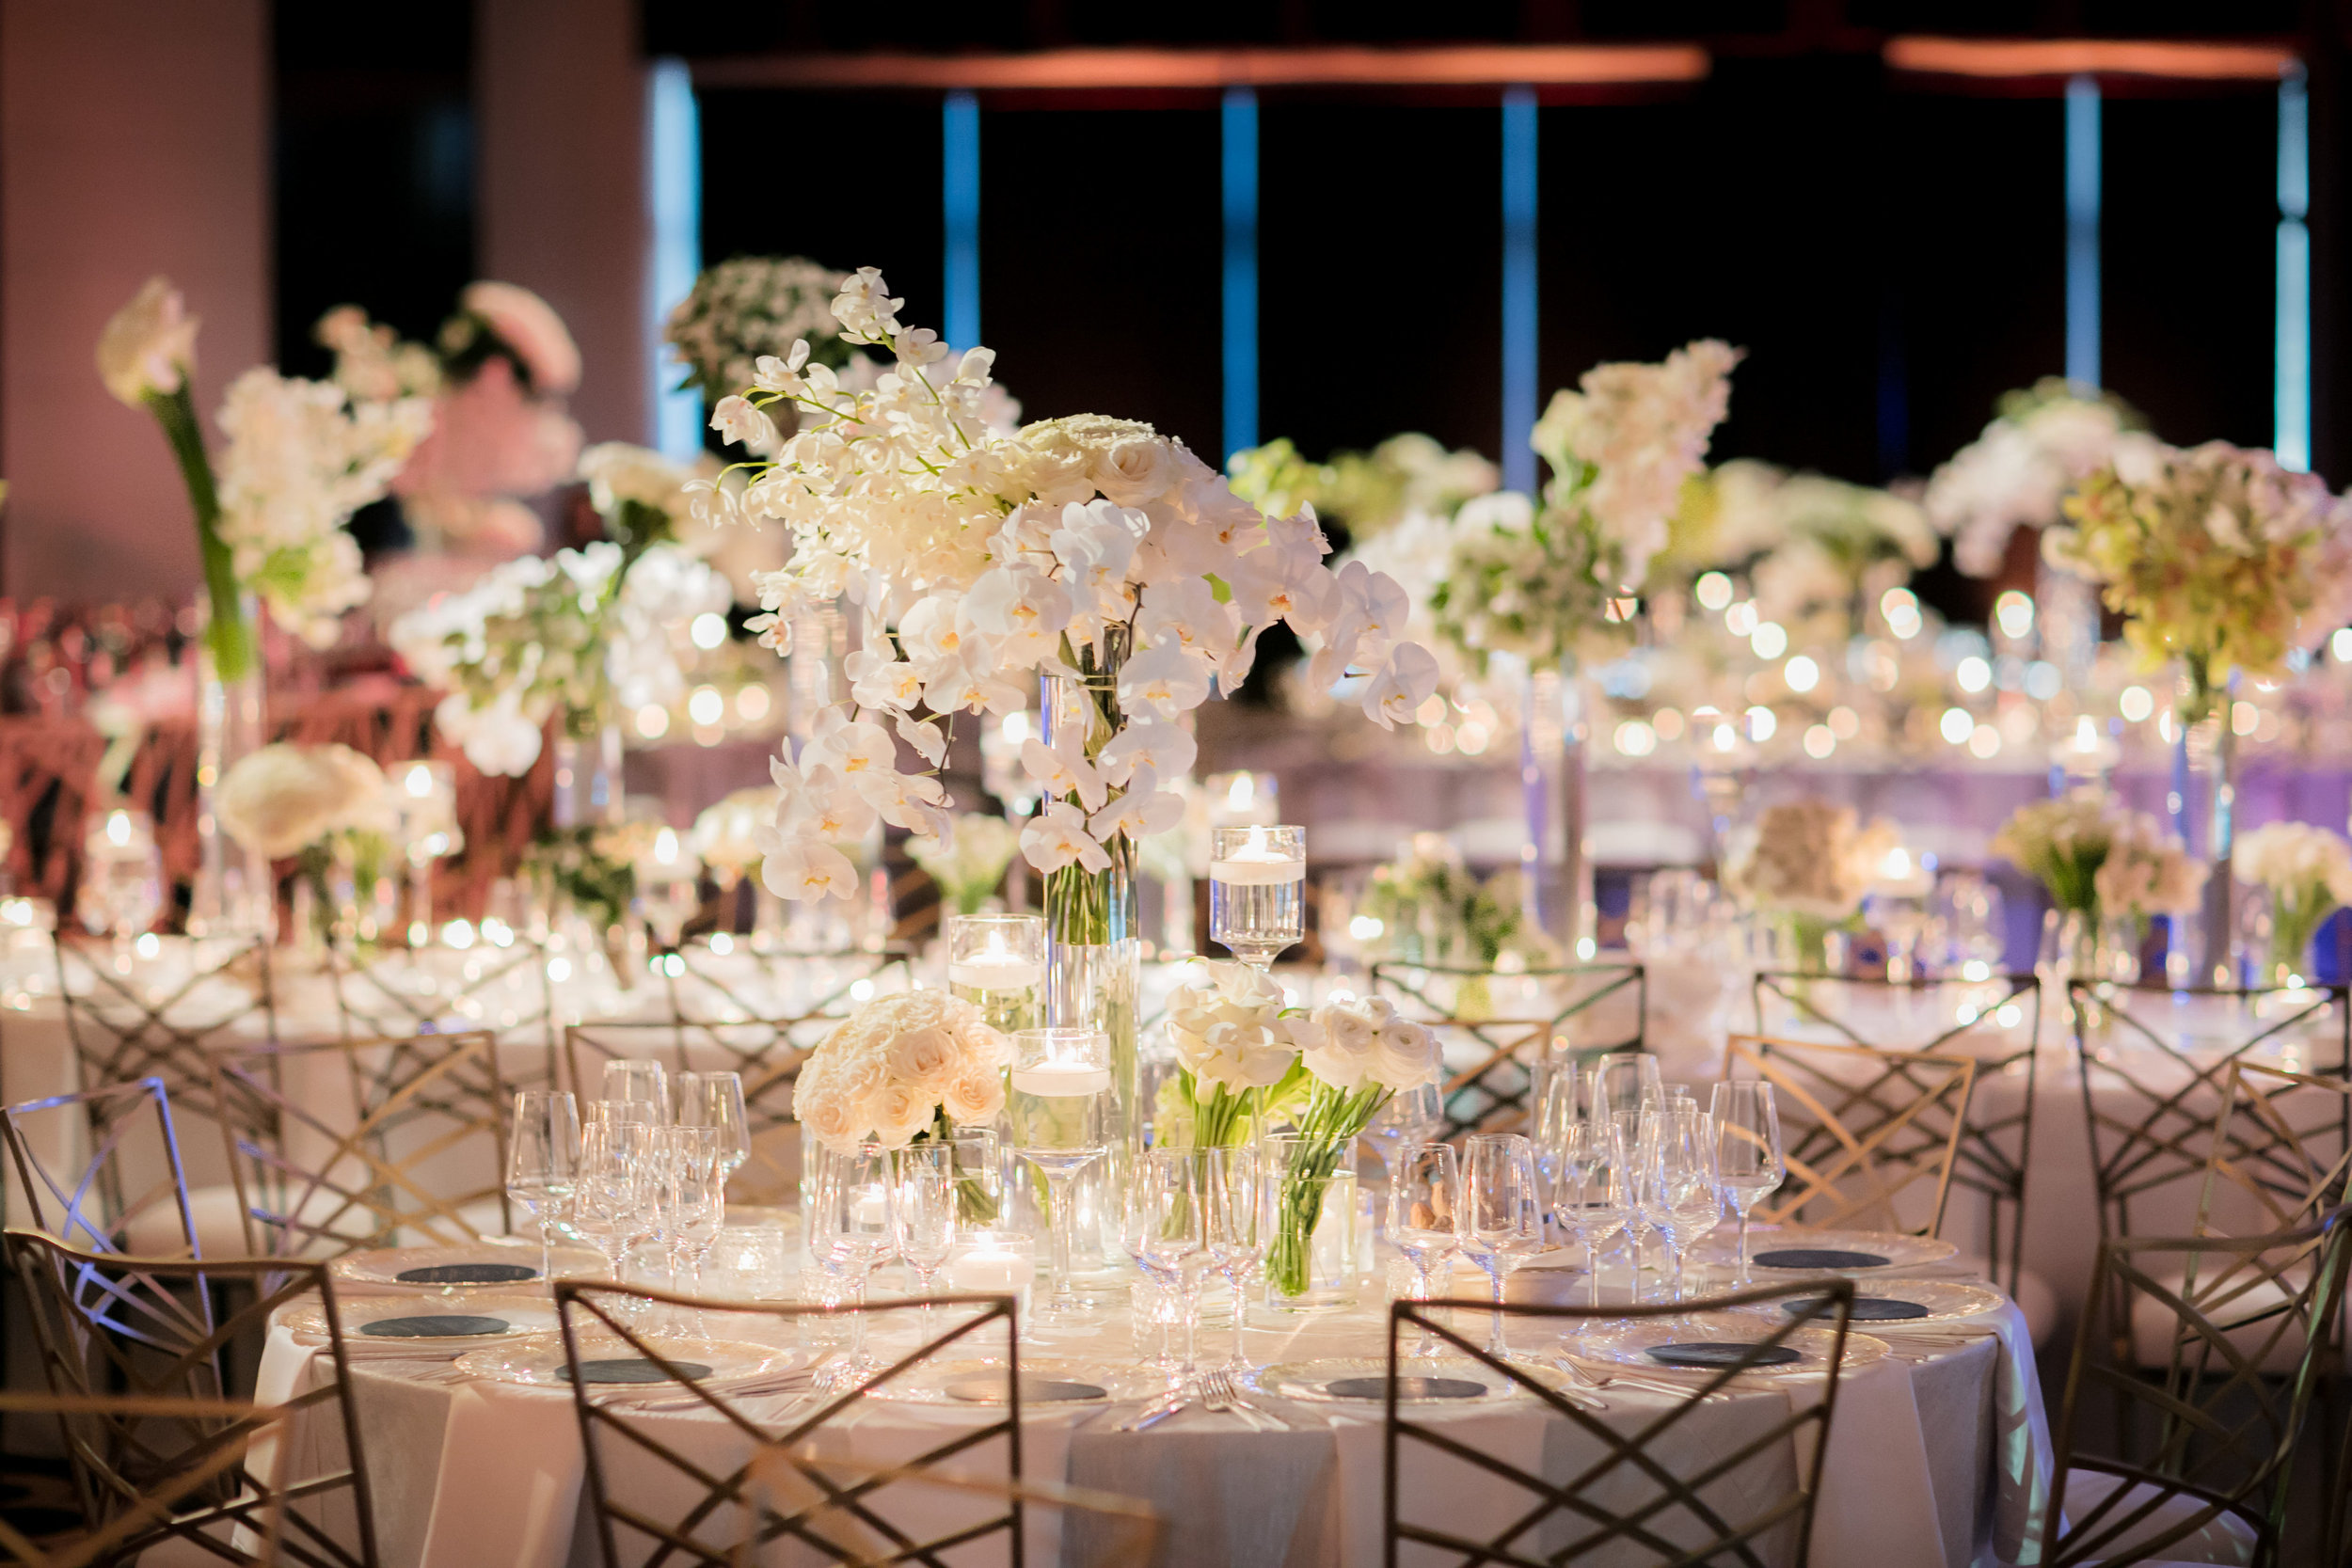 Andrea-Freeman-Events-NY-Wedding-Planner-Mandarin-Oriental-Wedding-12.jpg